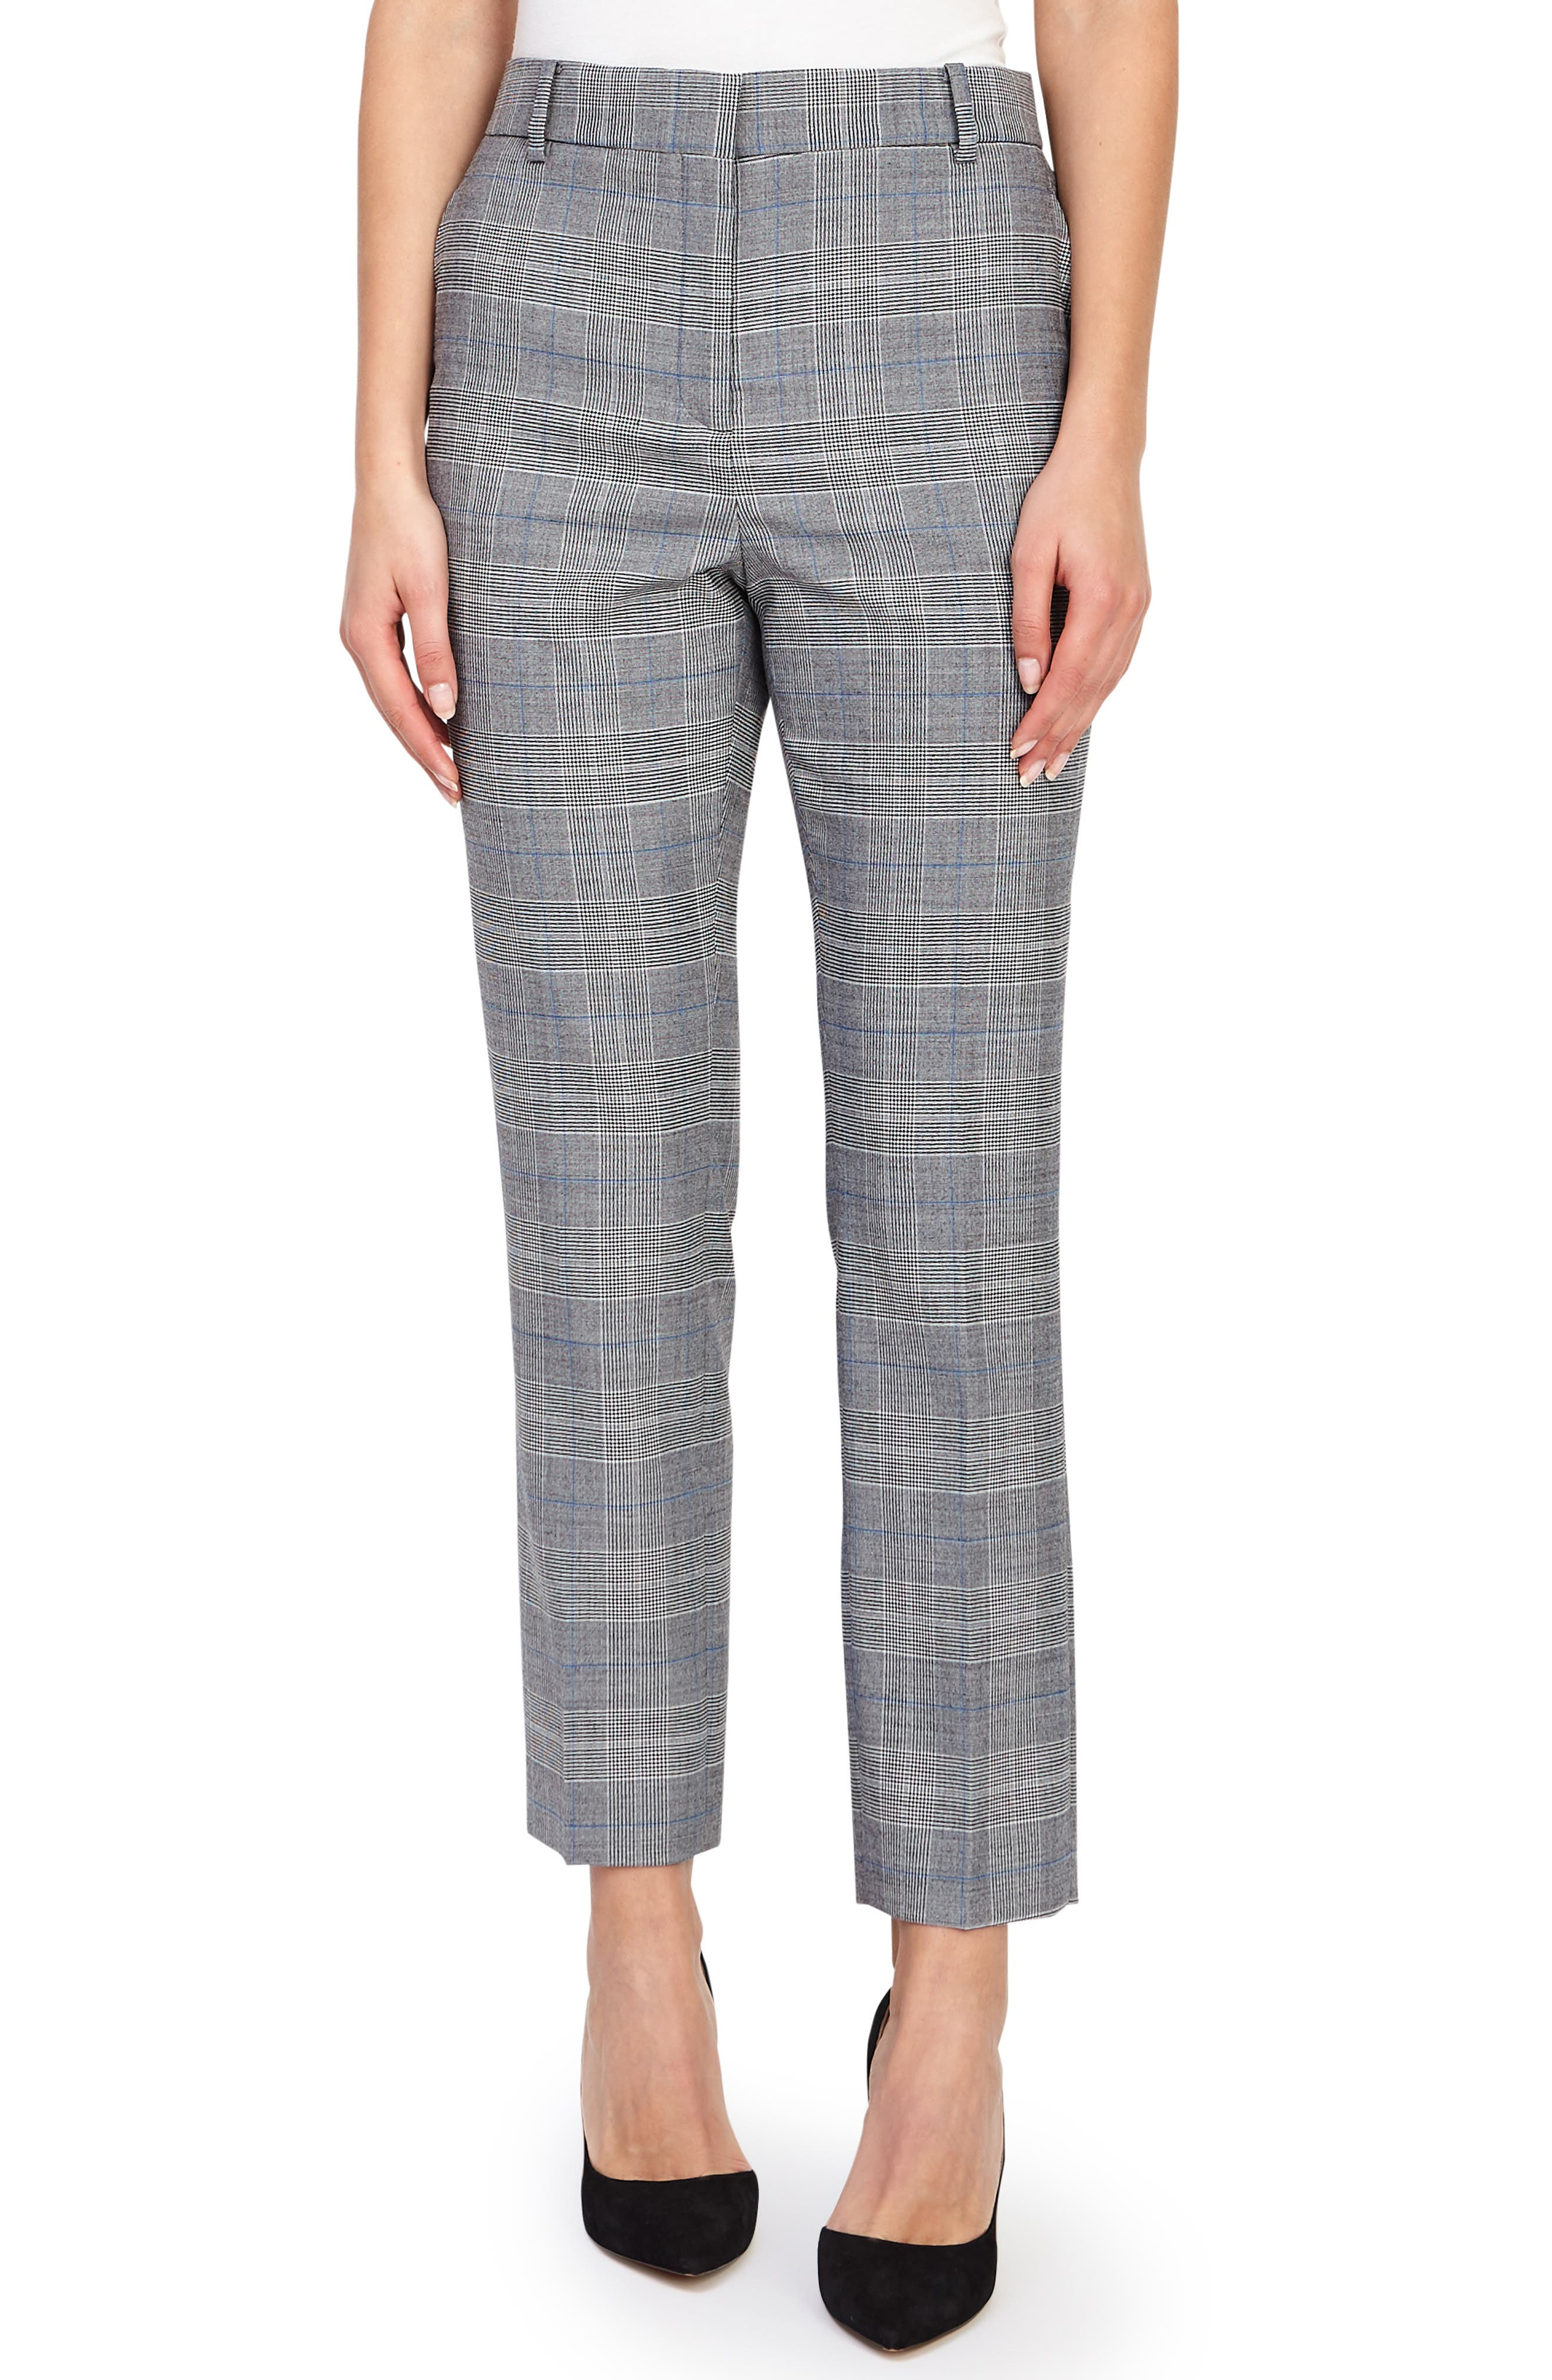 REISS Joss Check Plaid Ankle Trousers in Grey